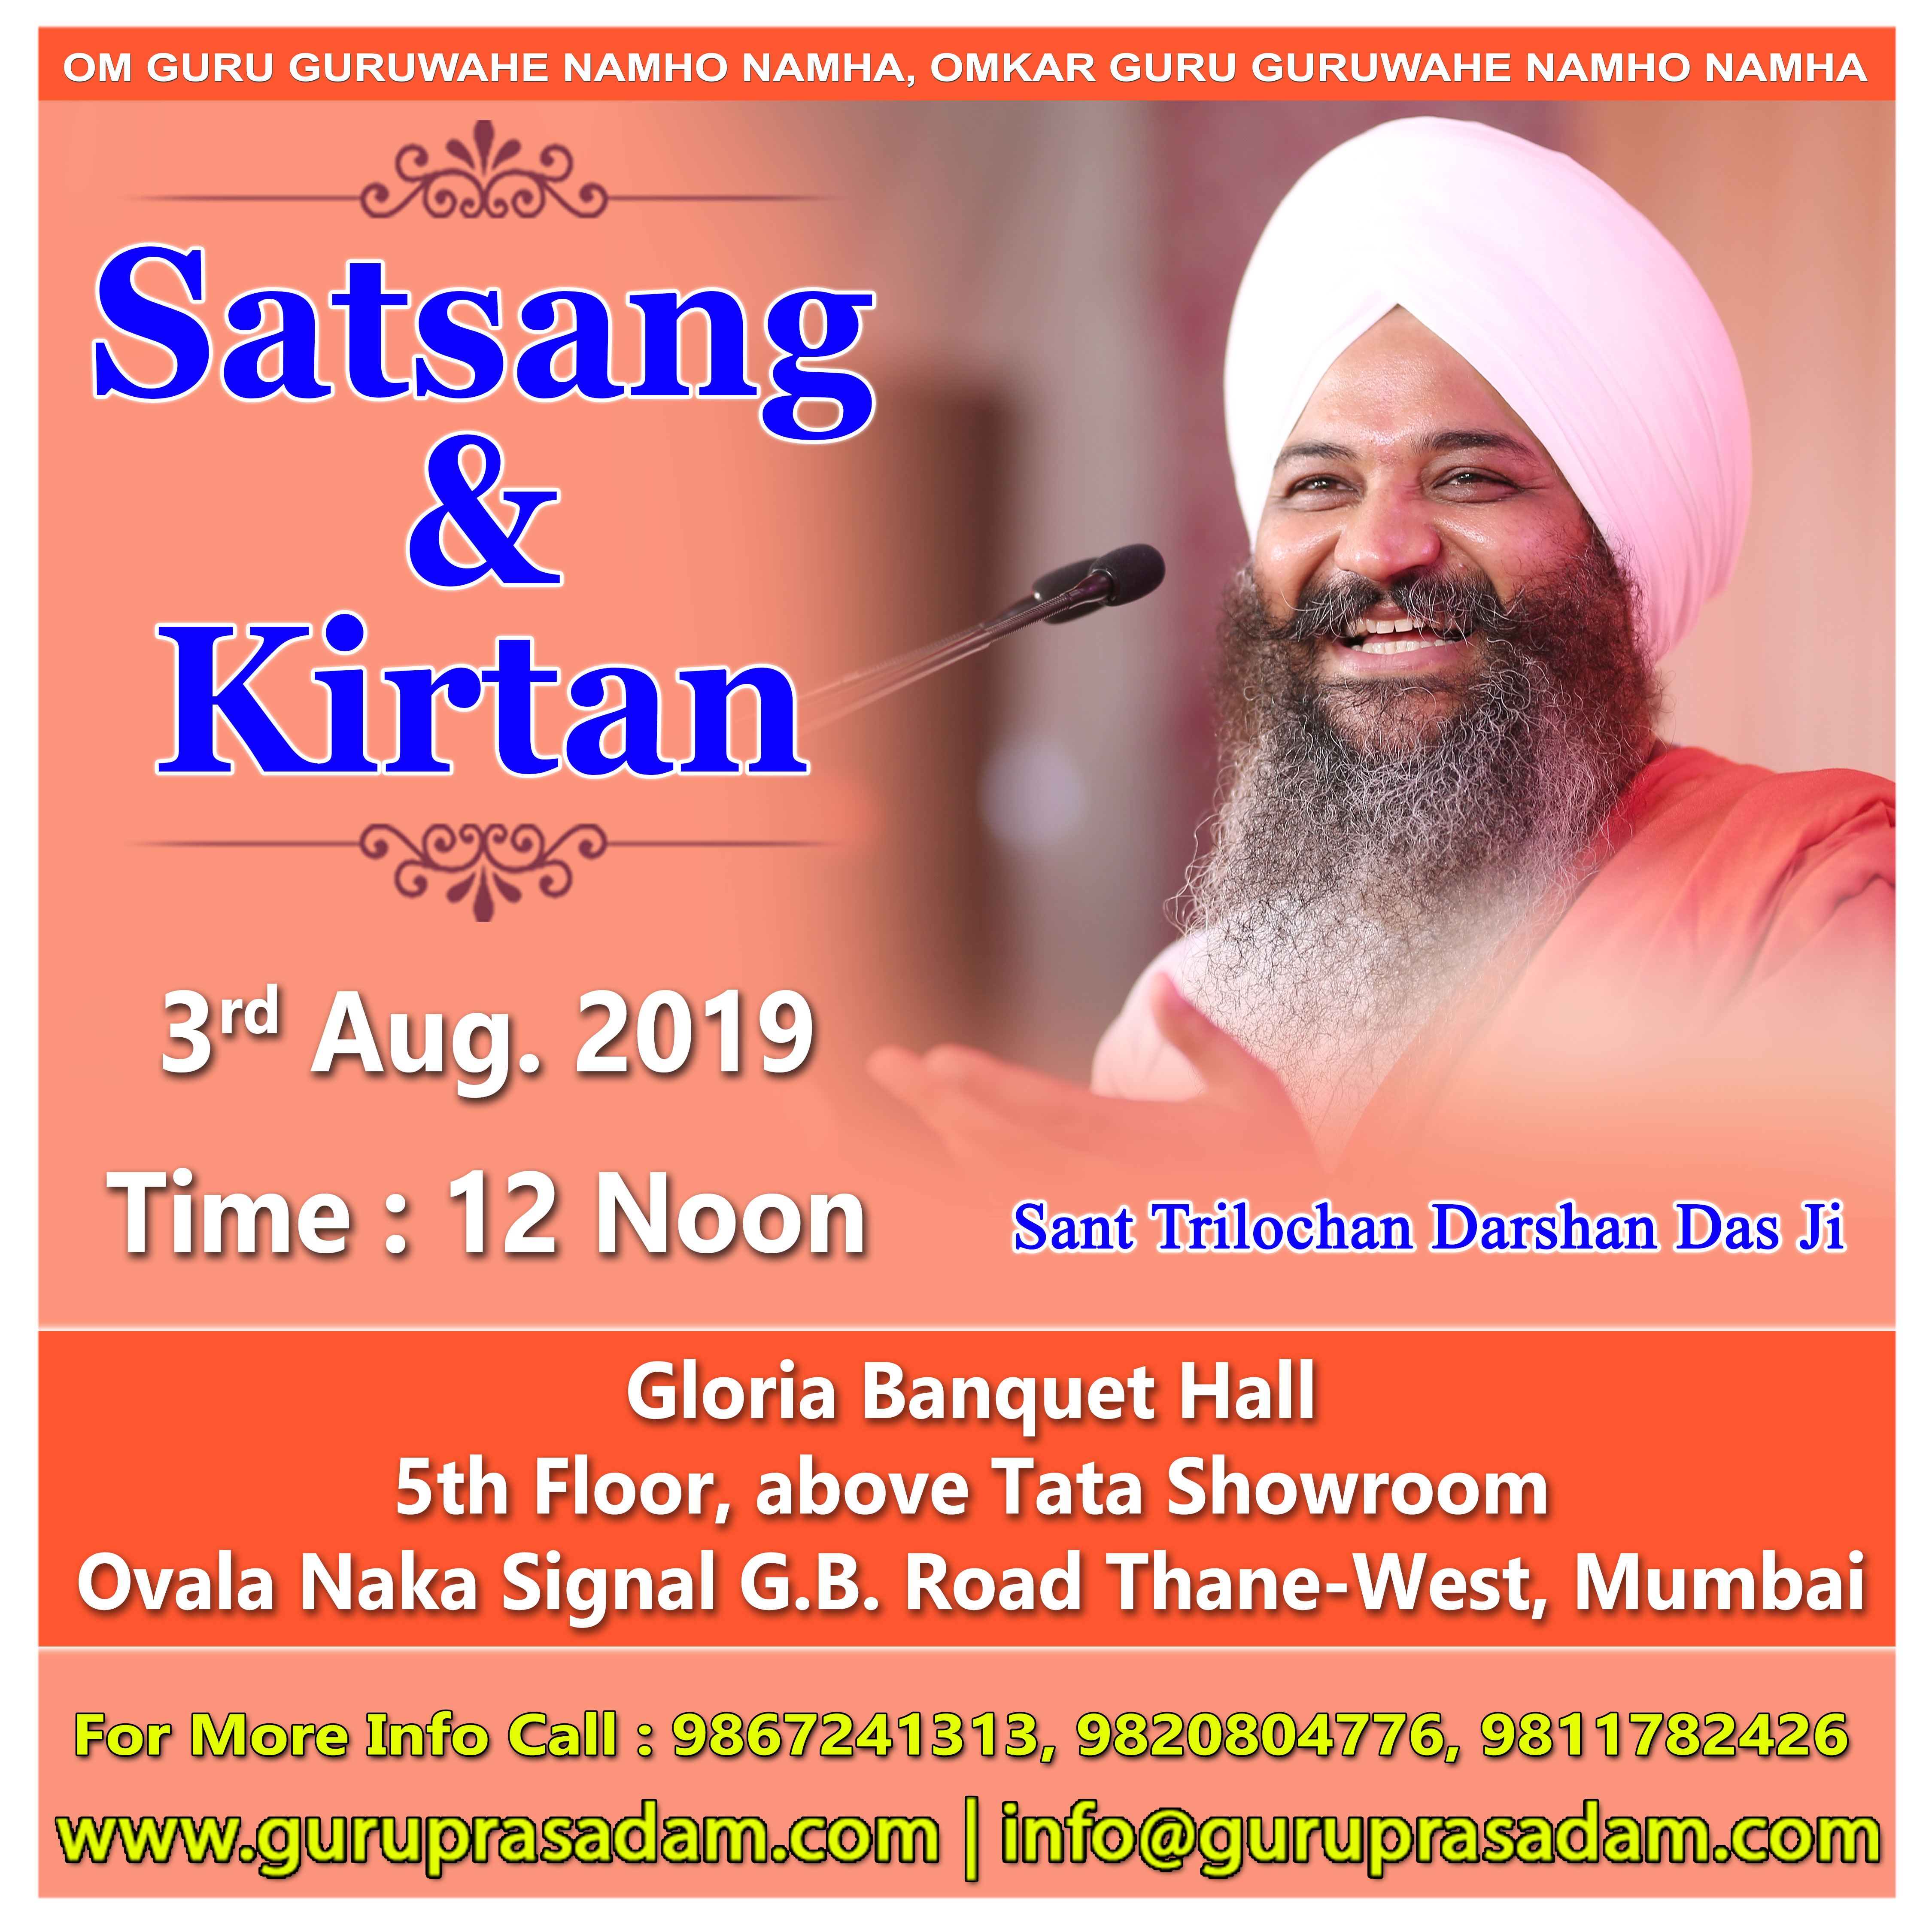 3-Aug-2019-Satsang & Kirtan by Sant Trilochan Darshan Das Ji at Mumbai